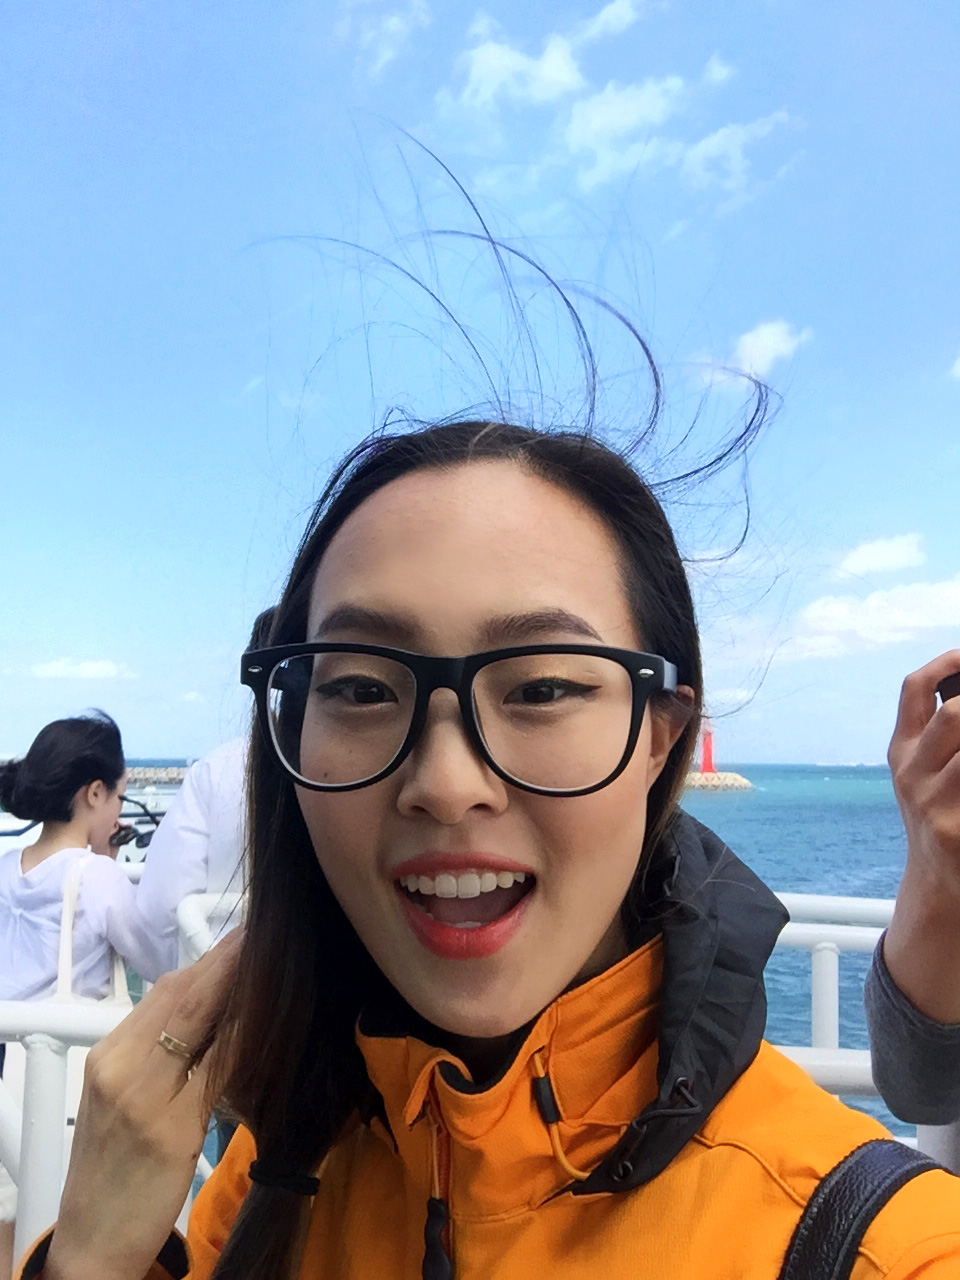 It was super windy on the ferry to Udo Island!